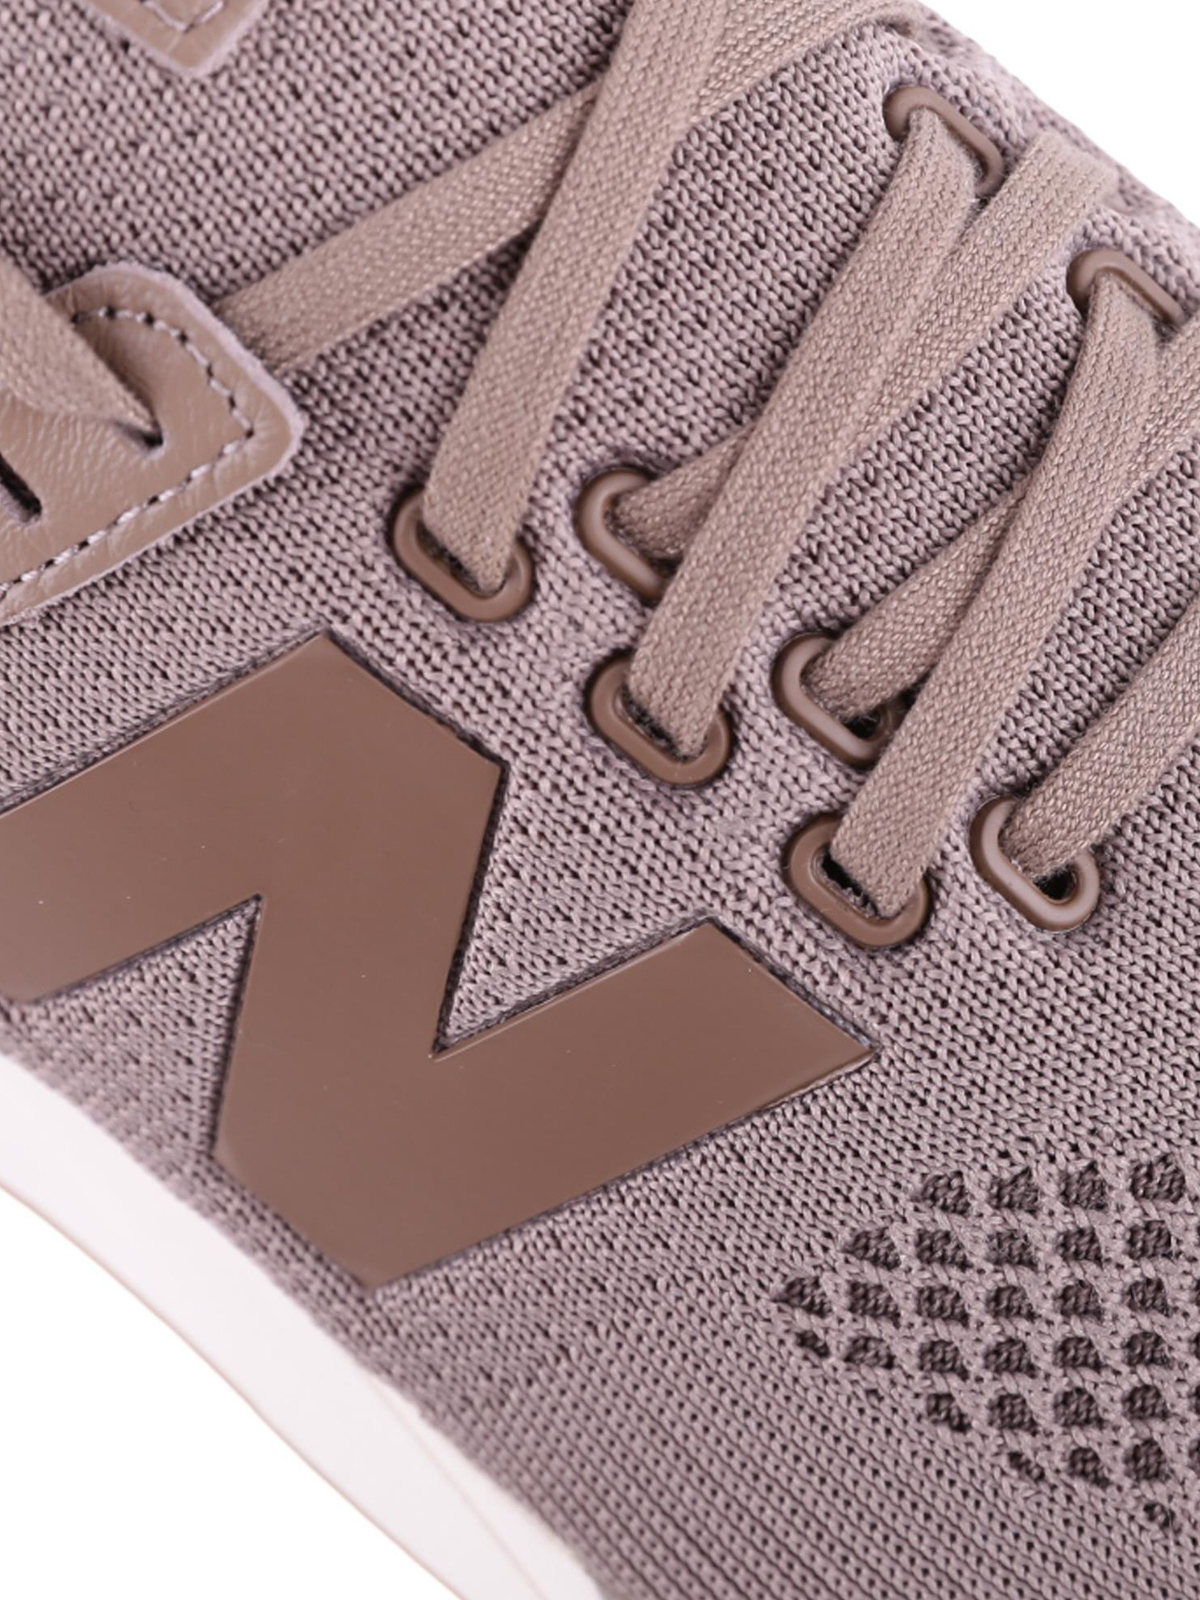 New Balance - 247 Decon taupe sneakers - trainers - MRL247DT ...